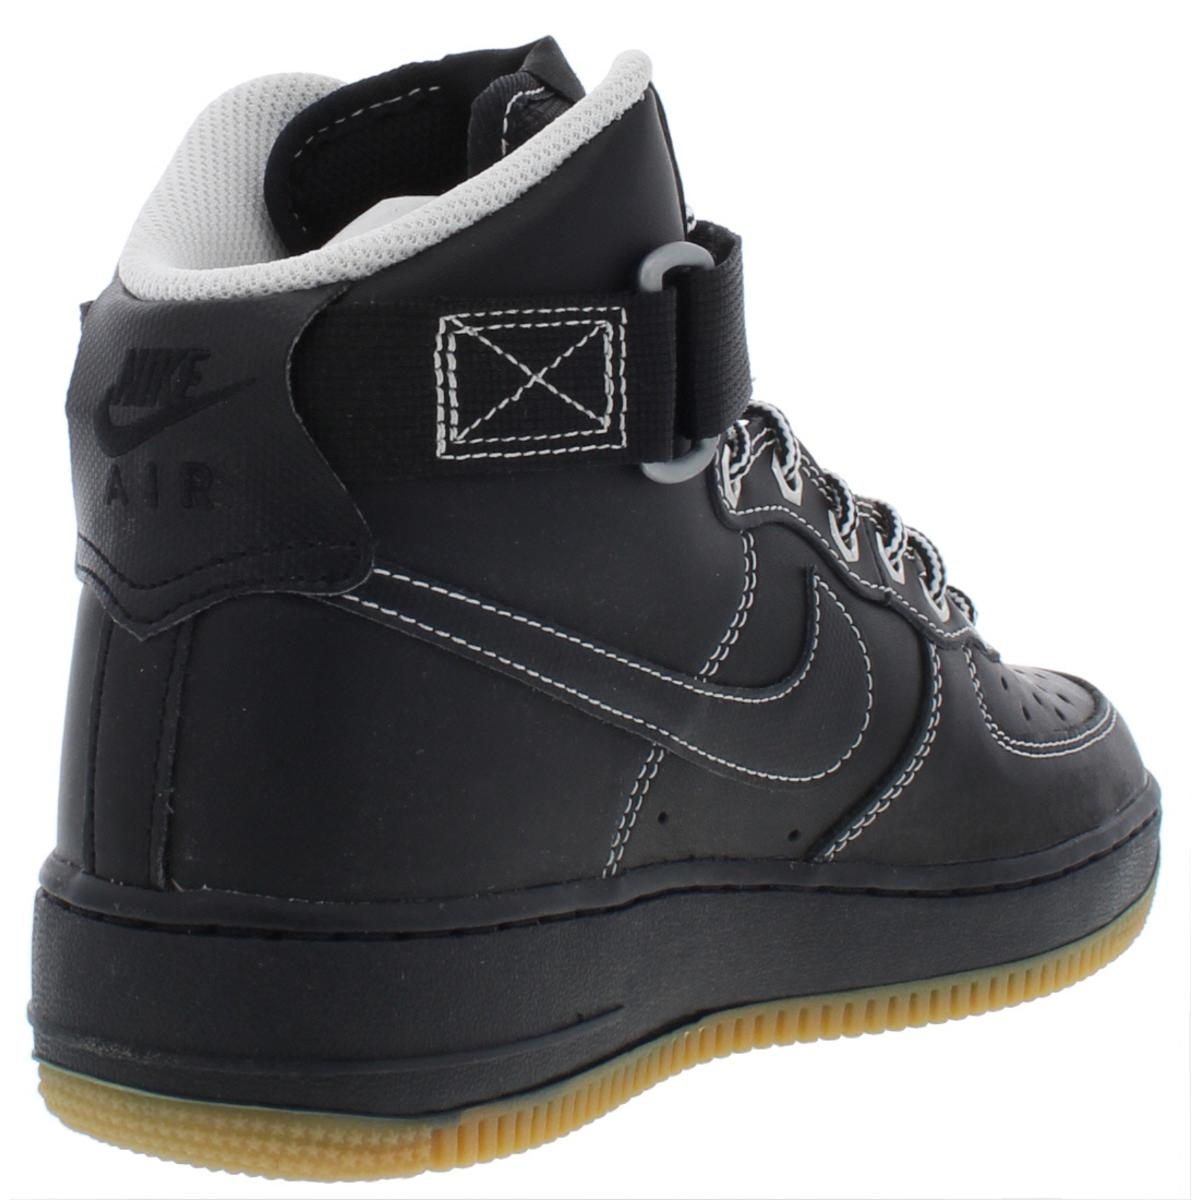 207e3c7ea4cd82 Nike Mens Air Force 1 High 07 Leather High Top Athletic Shoes ...